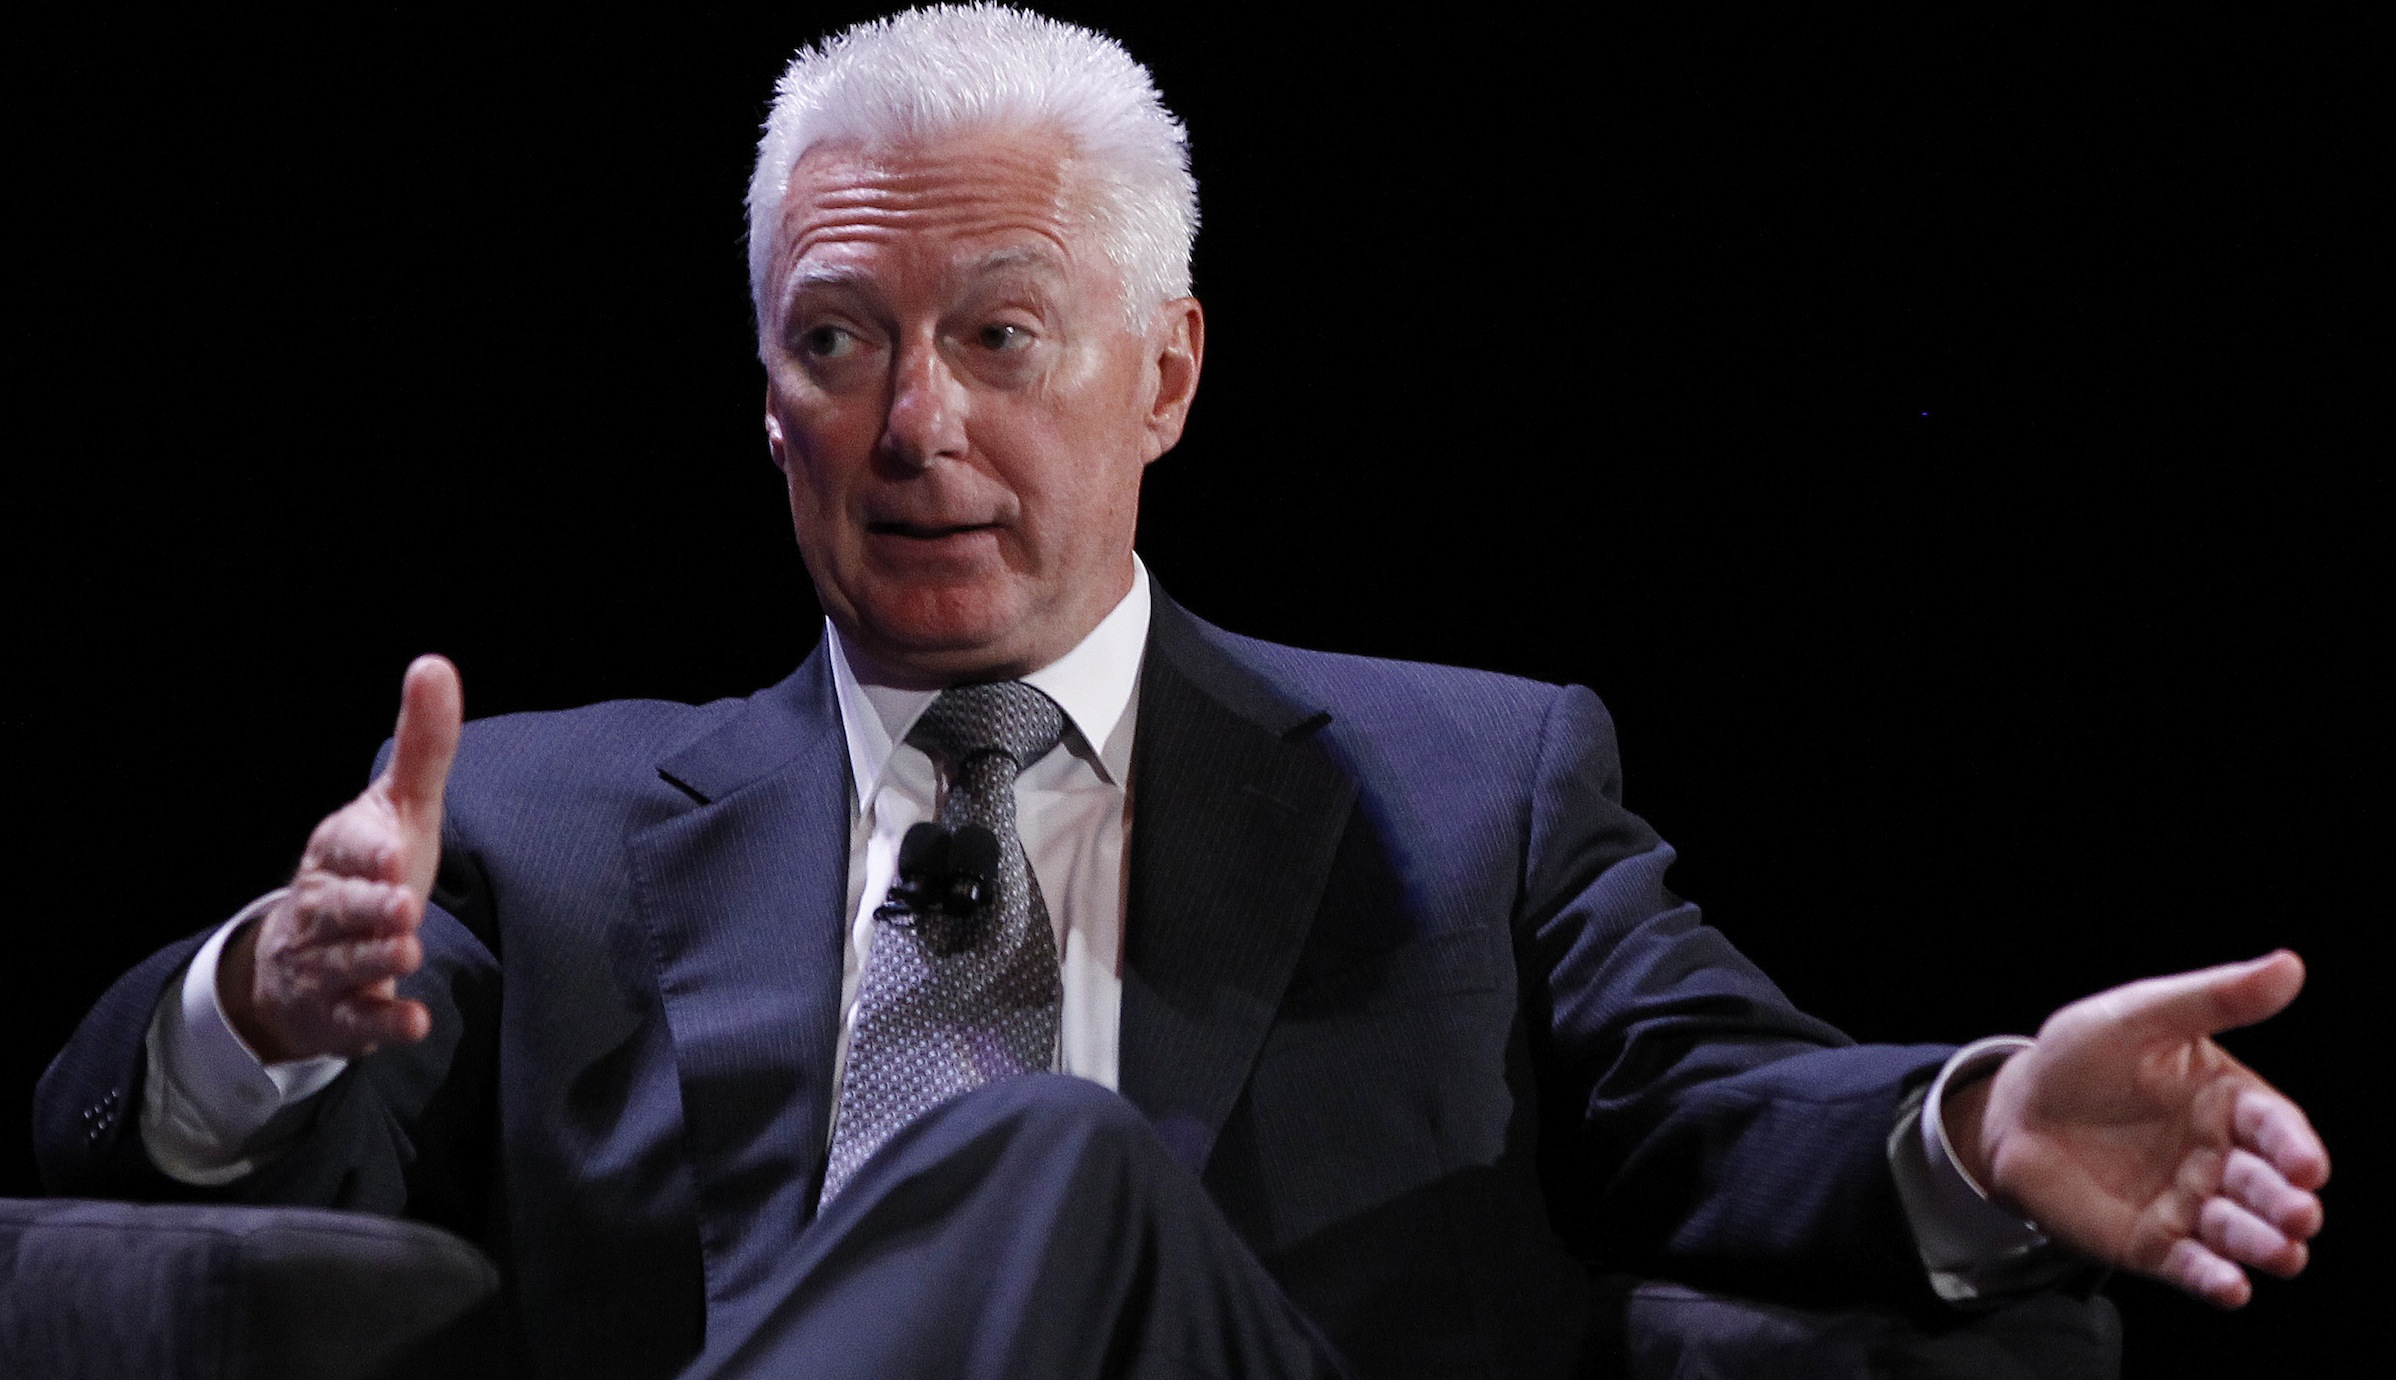 Former Chairman of the Board, President and Chief Executive Officer of Procter & Gamble A.G. Lafley speaks during the World Business Forum in New York October 6, 2010.   REUTERS/Shannon Stapleton   (UNITED STATES - Tags: BUSINESS) - RTXT4M3